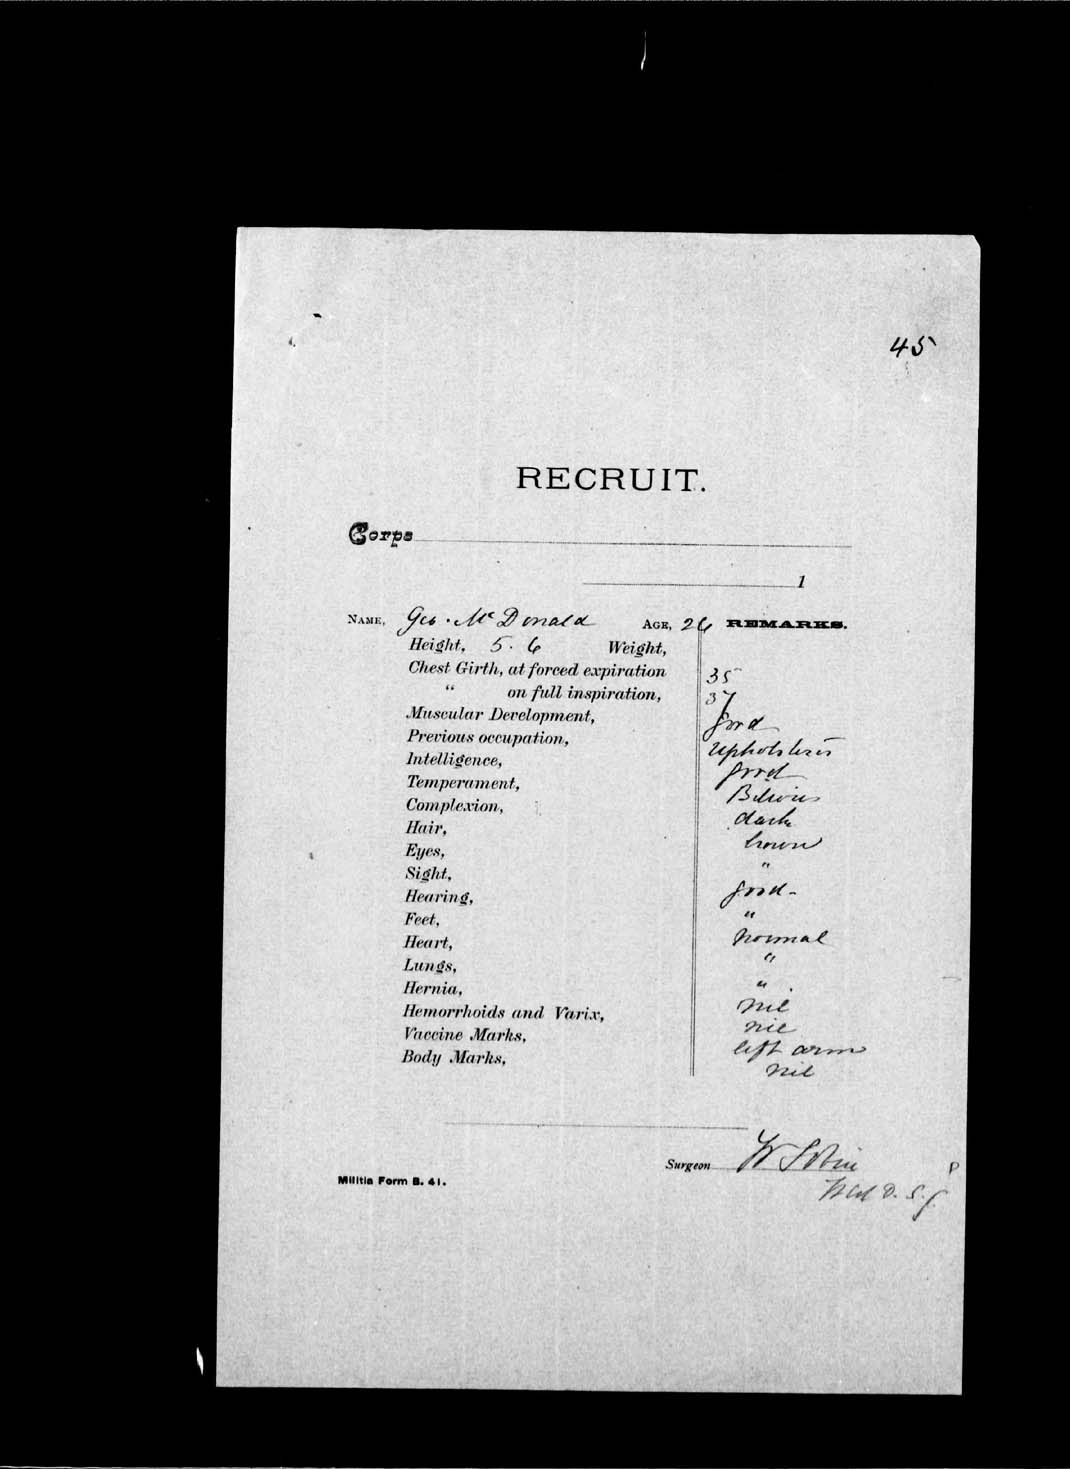 Digitized page of Boer War for Image No.: e002189325